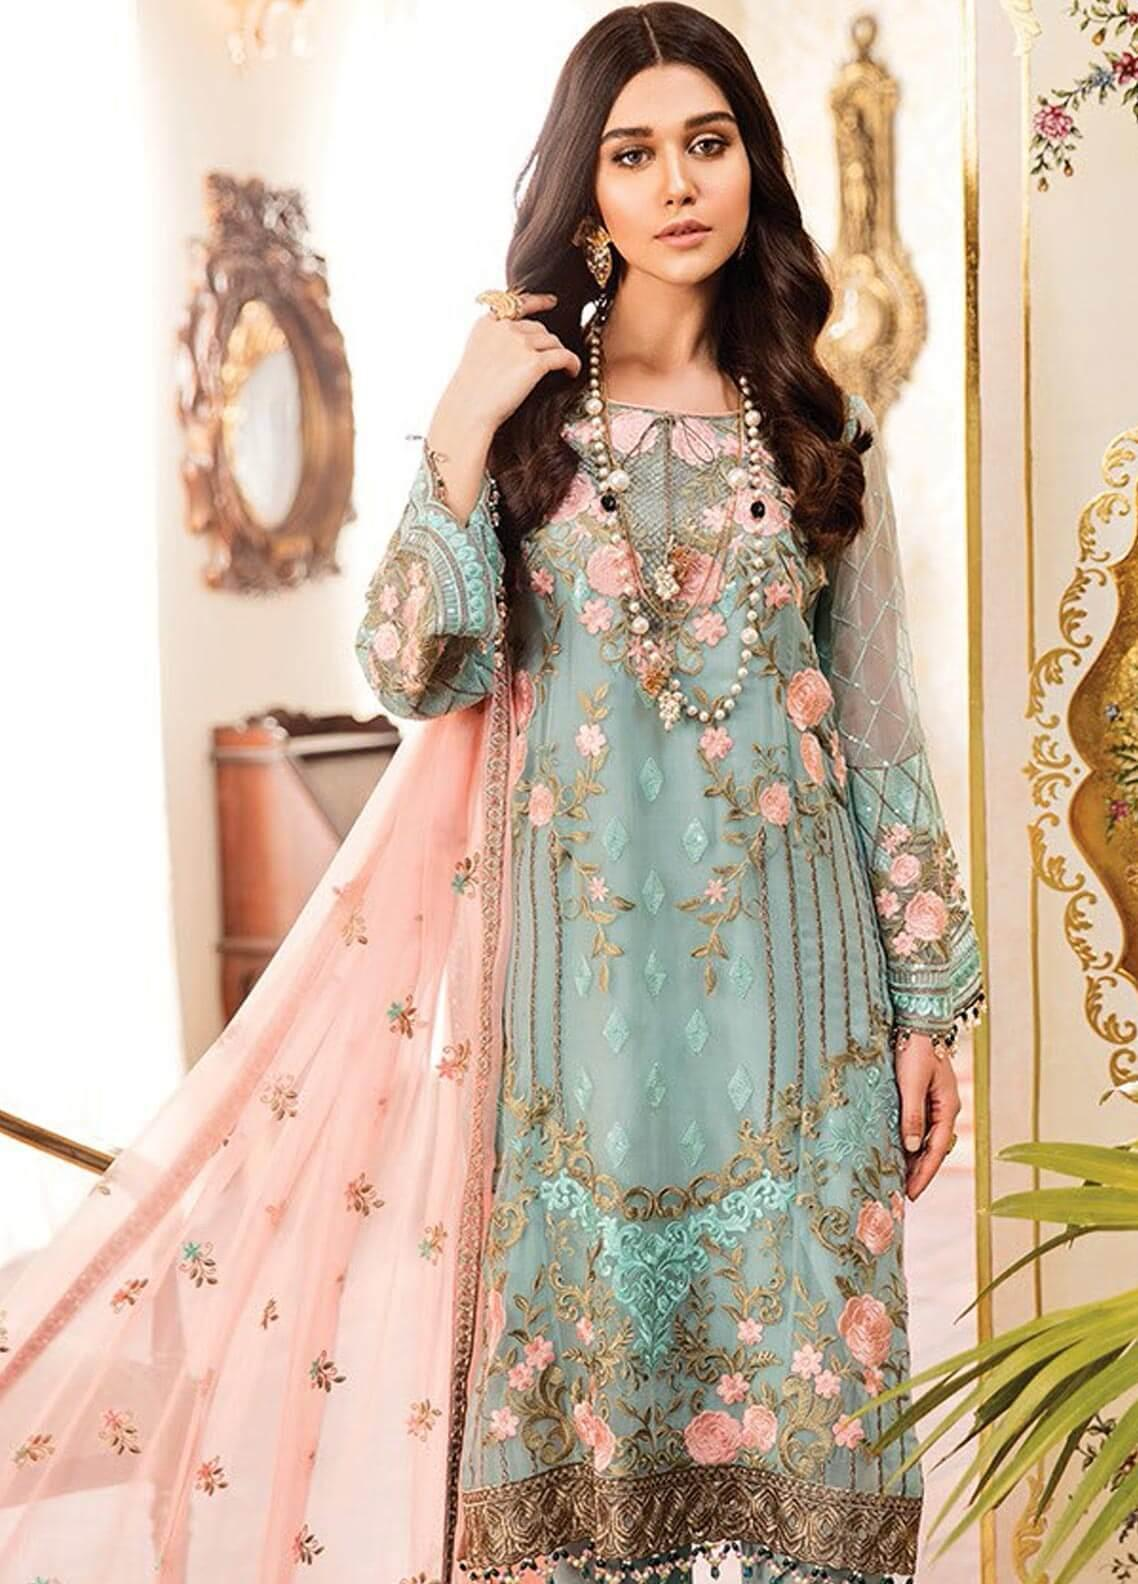 a57c2ea465 Kuch Khas By Flossie Embroidered Chiffon Unstitched 3 Piece Suit FKK19-C4  05 OAK AND PINE - Luxury Collection